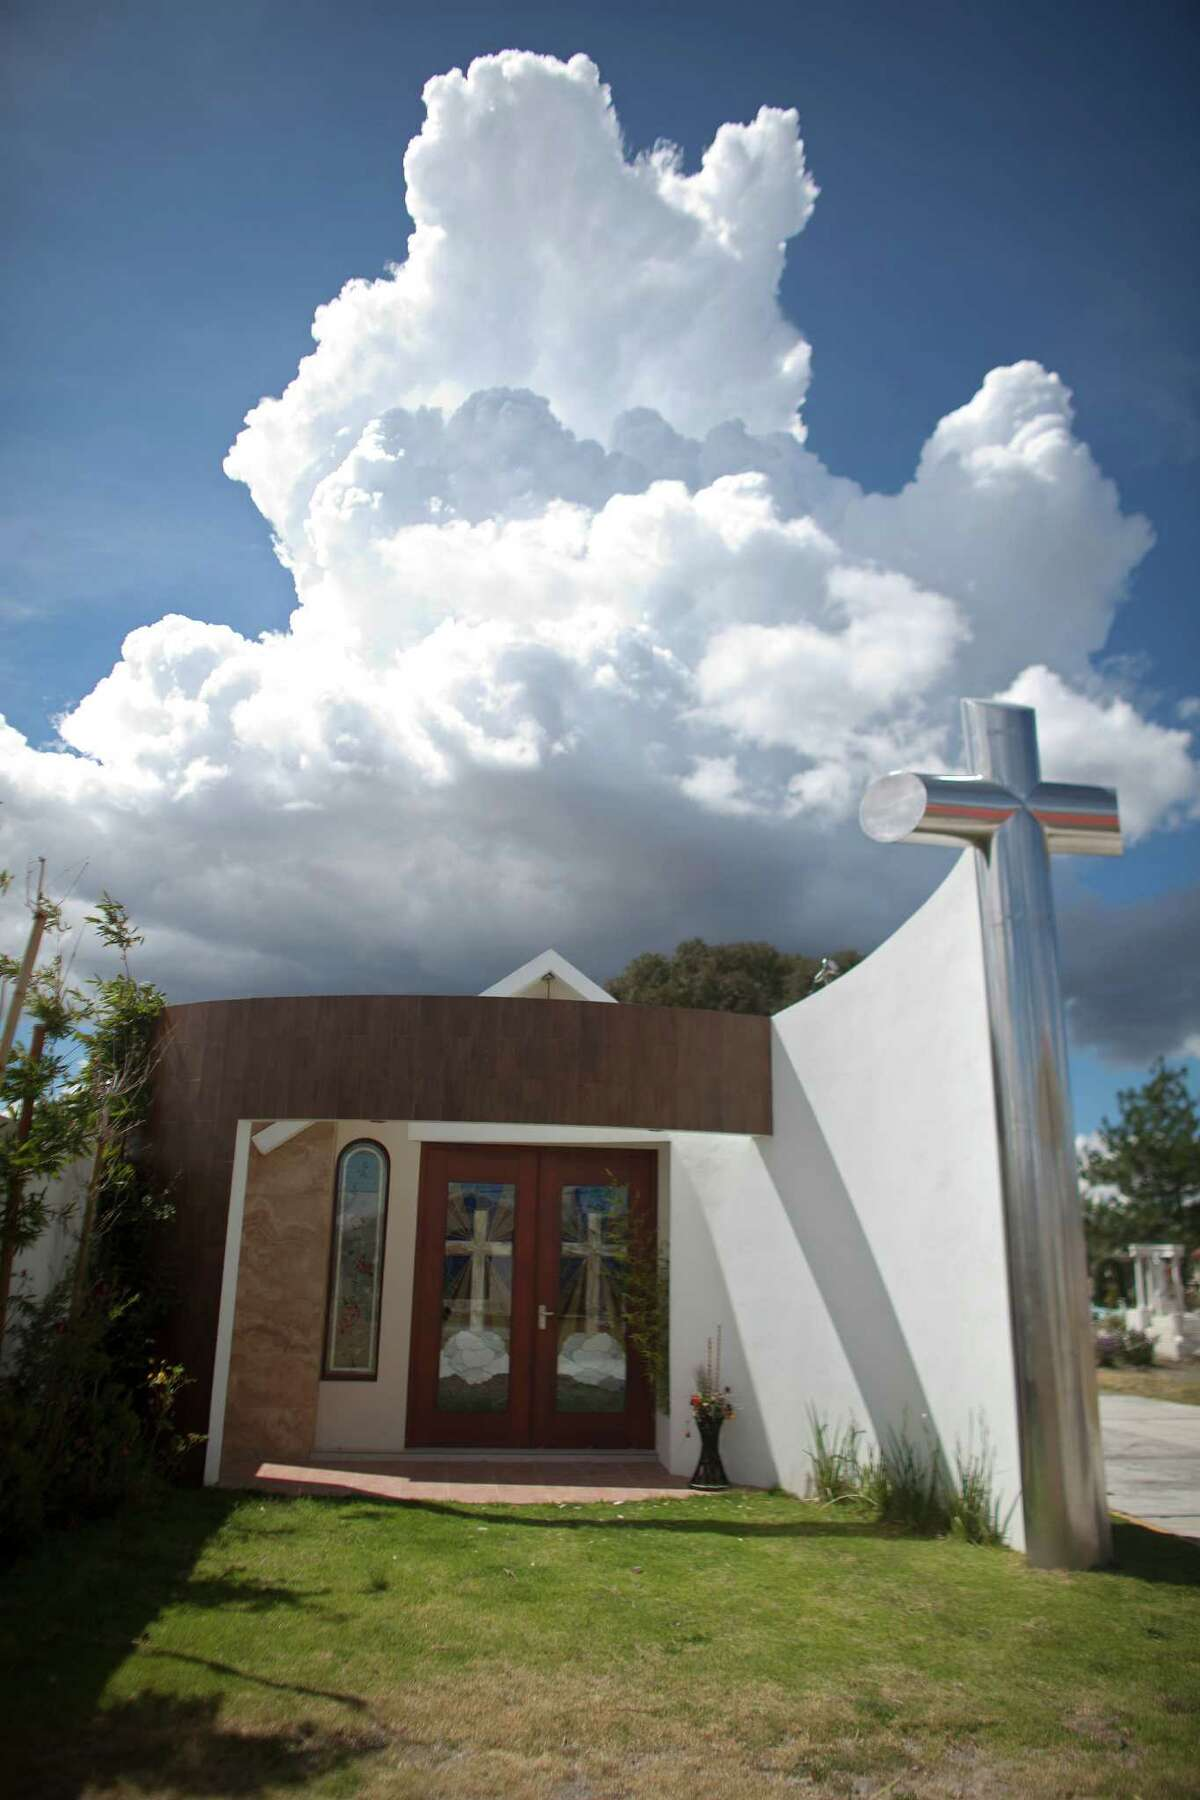 A tomb that was allegedly built by Heriberto Lazcano Lazcano, leader of the Zetas, stands at a cemetery in the neighborhood of Tezontle in Pachuca, Mexico, Tuesday, Oct. 9, 2012. The tomb is a small scale copy of a church in Tezontle, which at one point had a plaque naming Lazcano as the donor. Mexico's Navy says fingerprints confirm that cartel leader Lazcano, an army special forces deserter, was killed Sunday, Oct. 7, 2012 in a firefight with marines in the northern state of Coahuila on the border with the Texas. (AP Photo/Alexandre Meneghini)